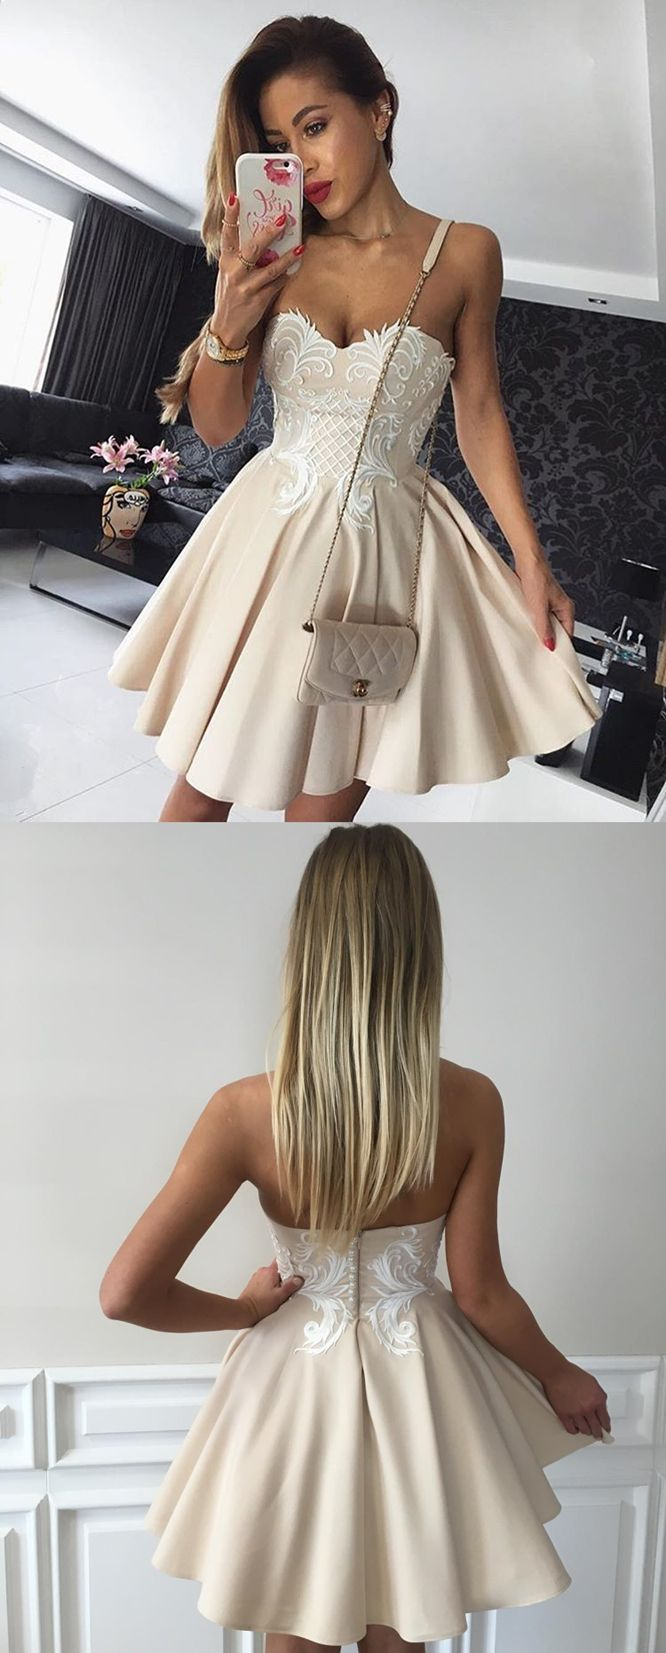 2017 homecoming dresses,beige homecoming dresses,sweetheart homecoming dresses,short party dresses